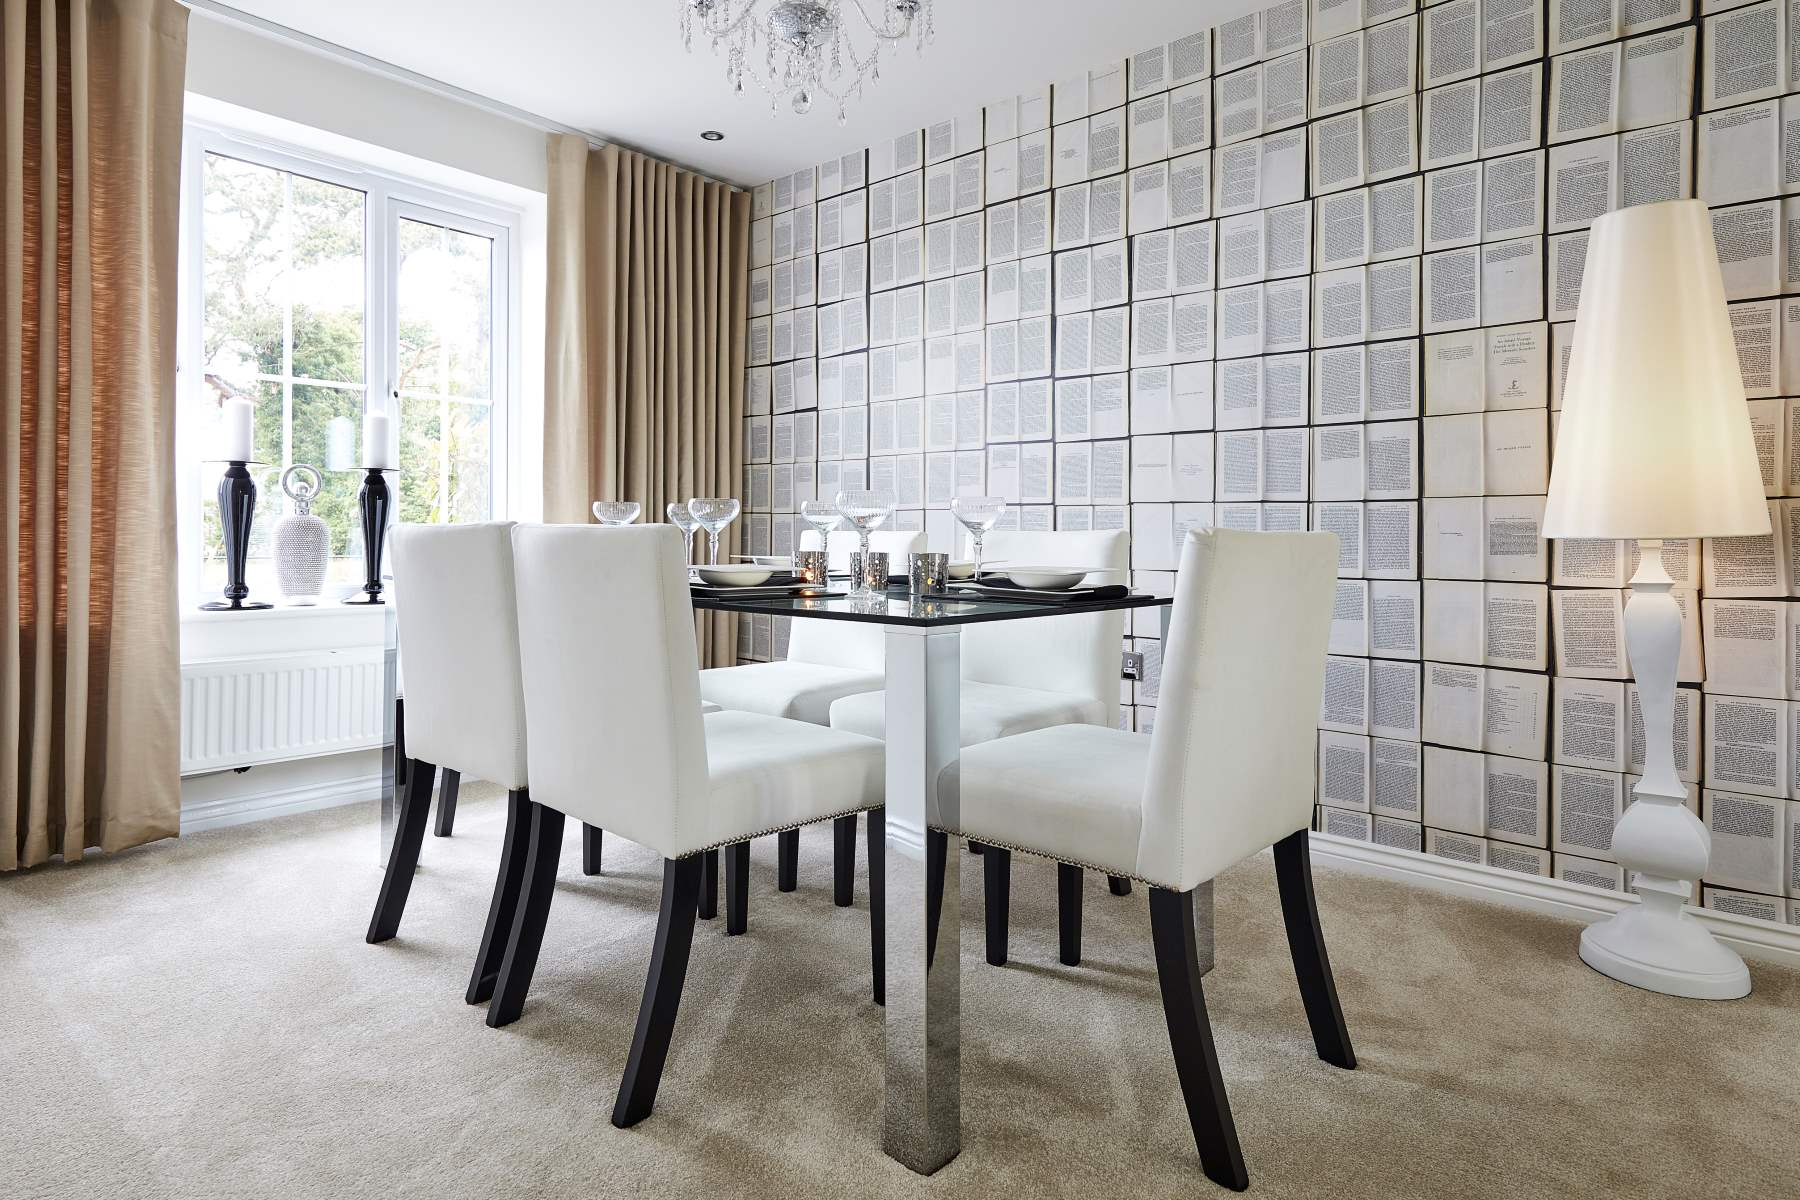 Plot 32 the thornford taylor wimpey for Greens dining room zetland road bristol